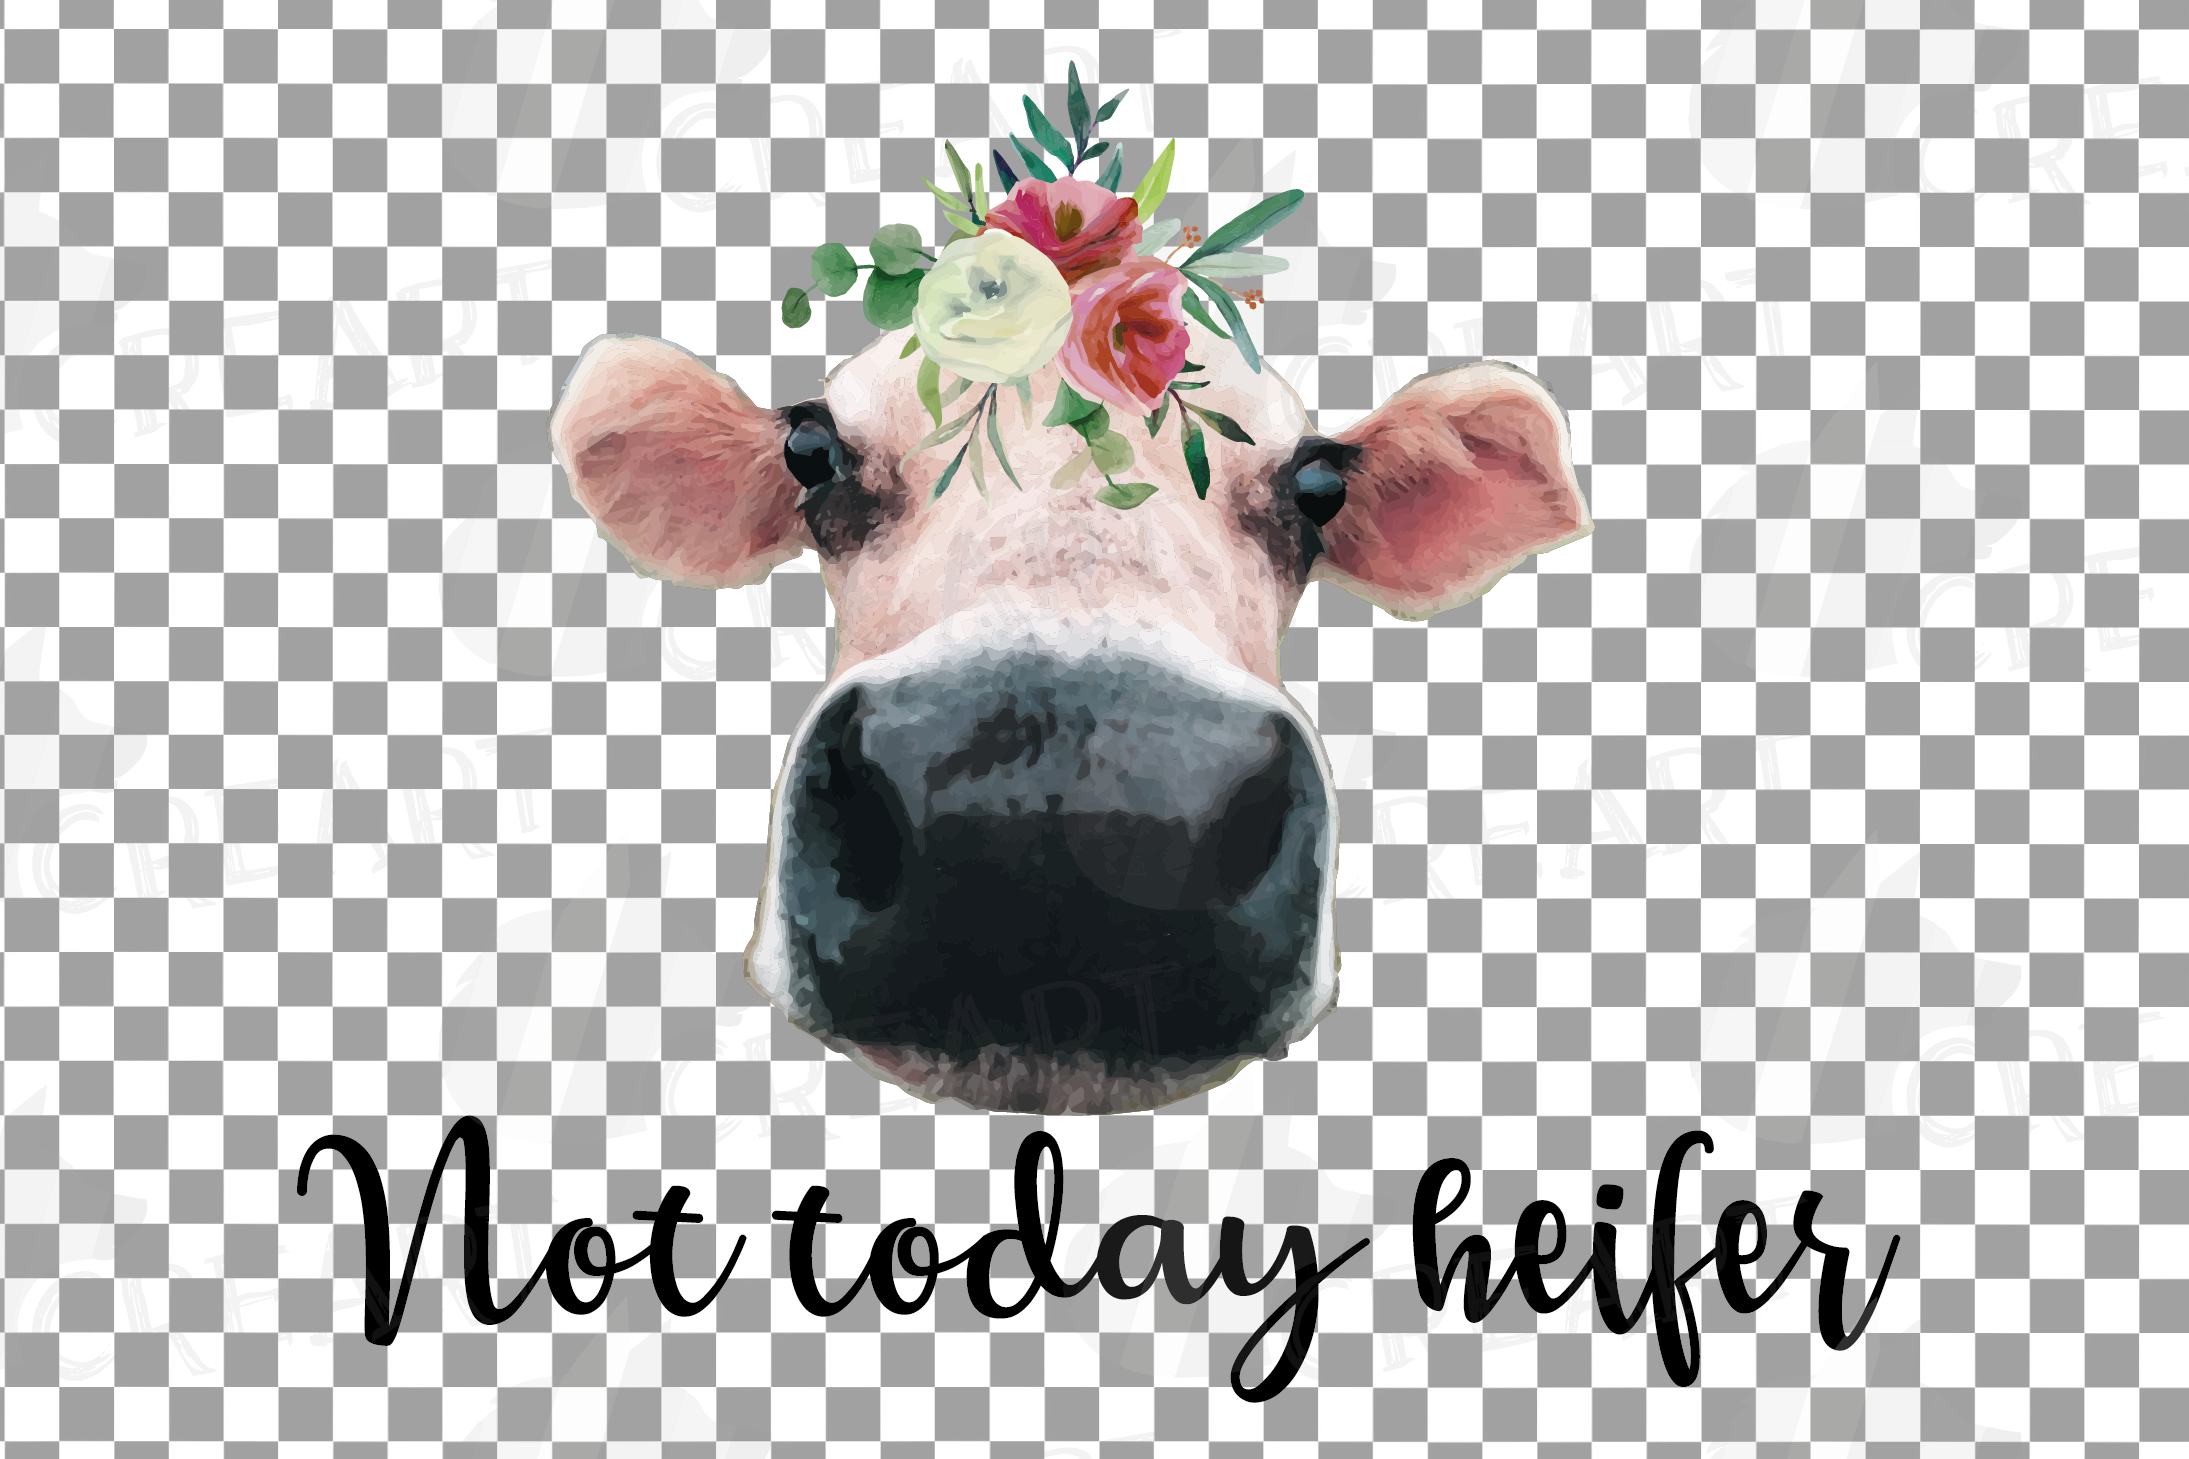 Cows with floral crown clip art. Not today heifer graphic example image 9